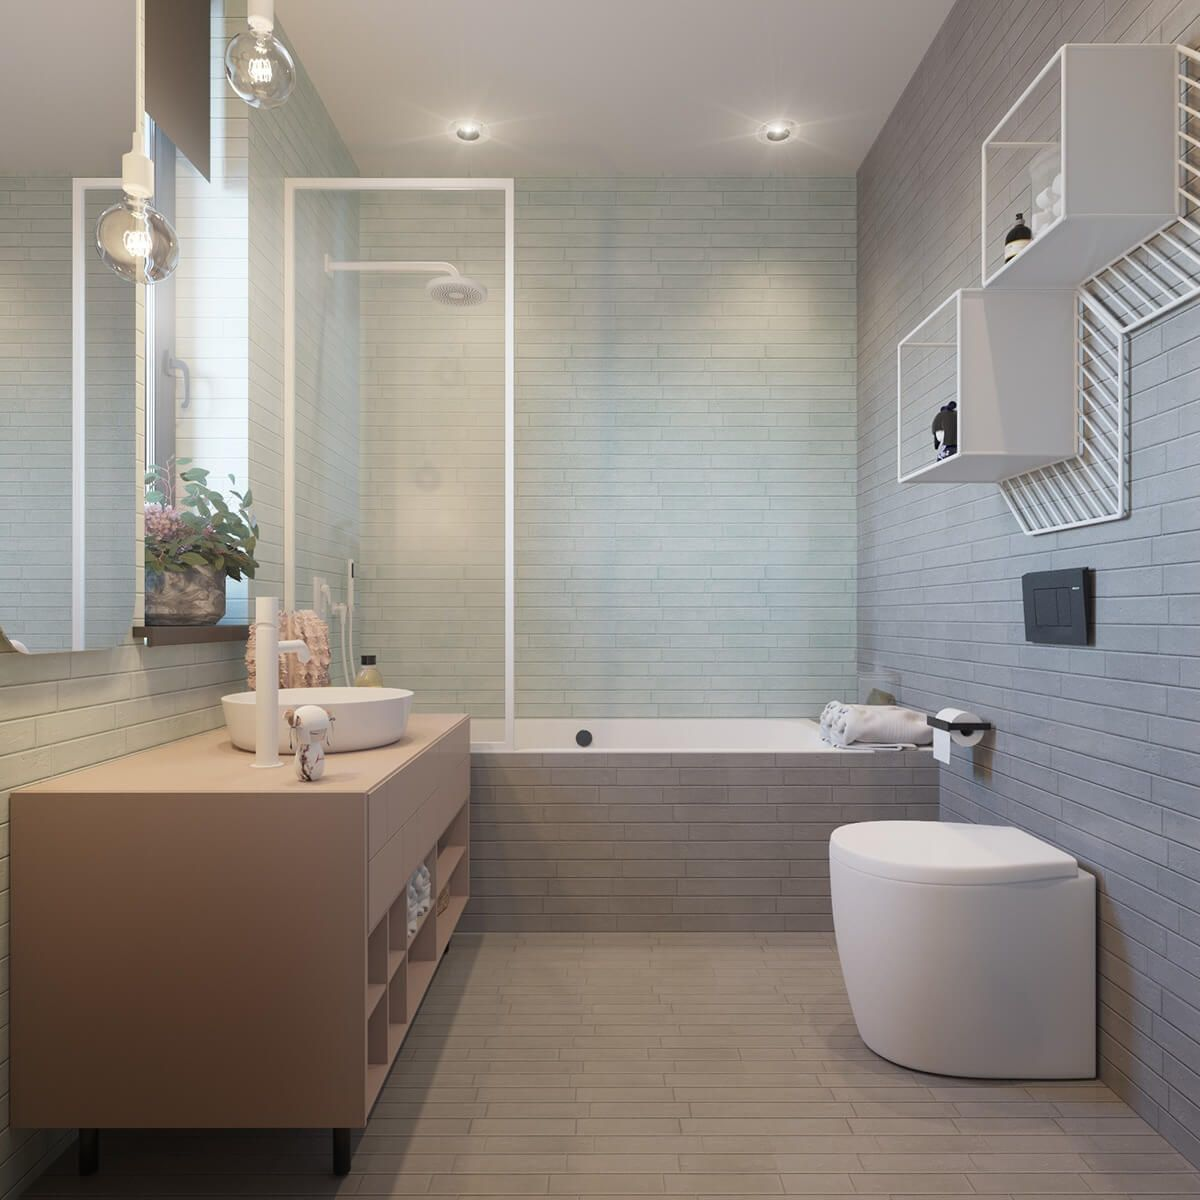 Free Bathroom Design Software In 2020 Bathroom Design Layout Bathroom Renovation Designs Bathroom Design Software